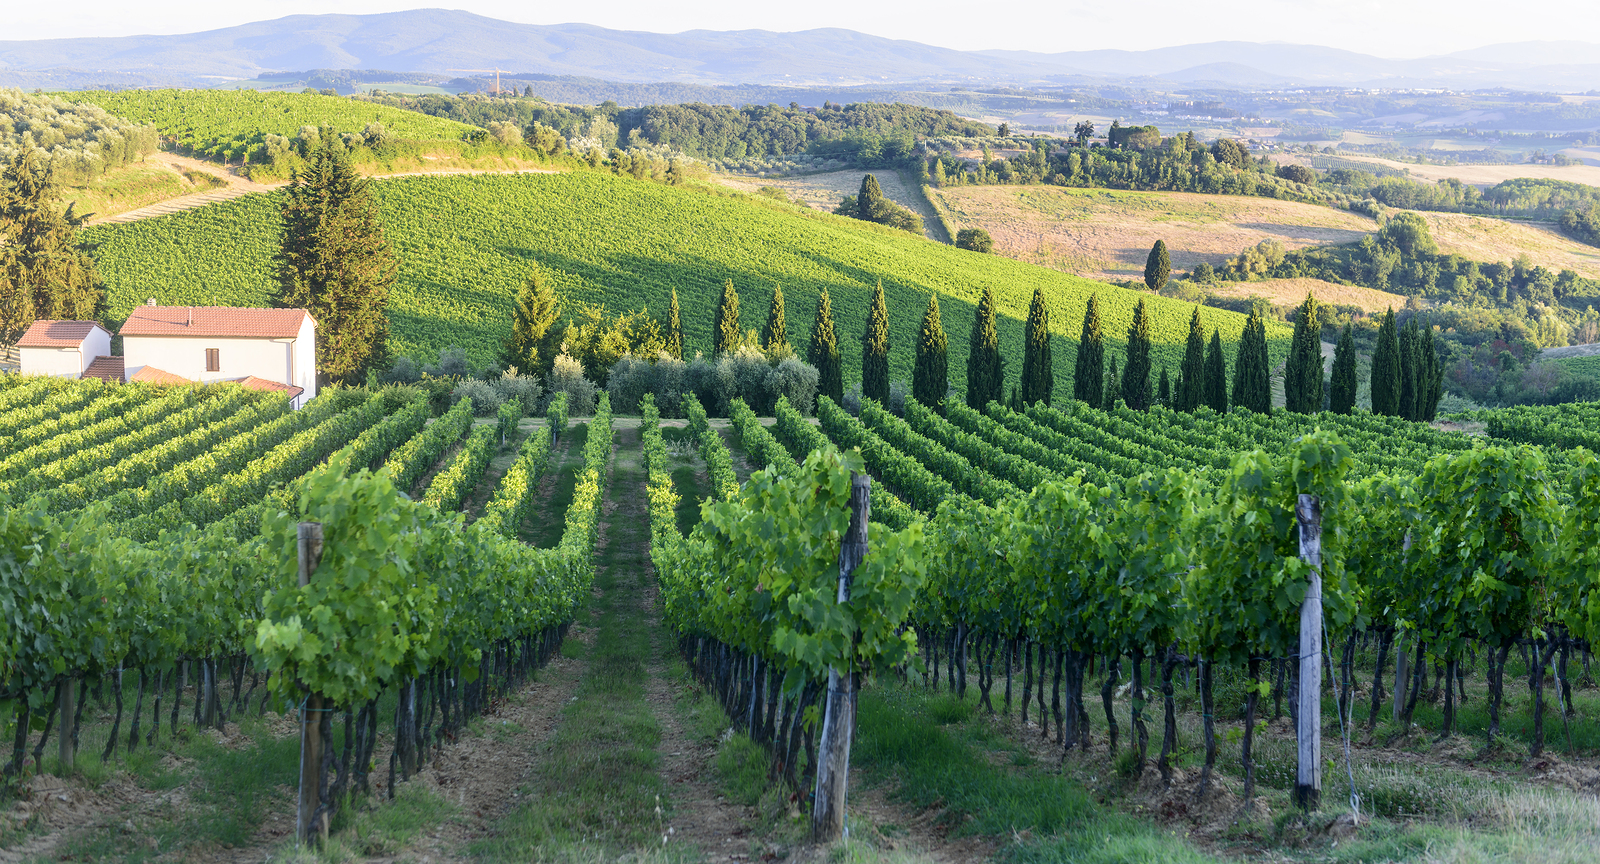 Sangiovese vineyards in Chianti (Florence Tuscany Italy) with vineyards at summer